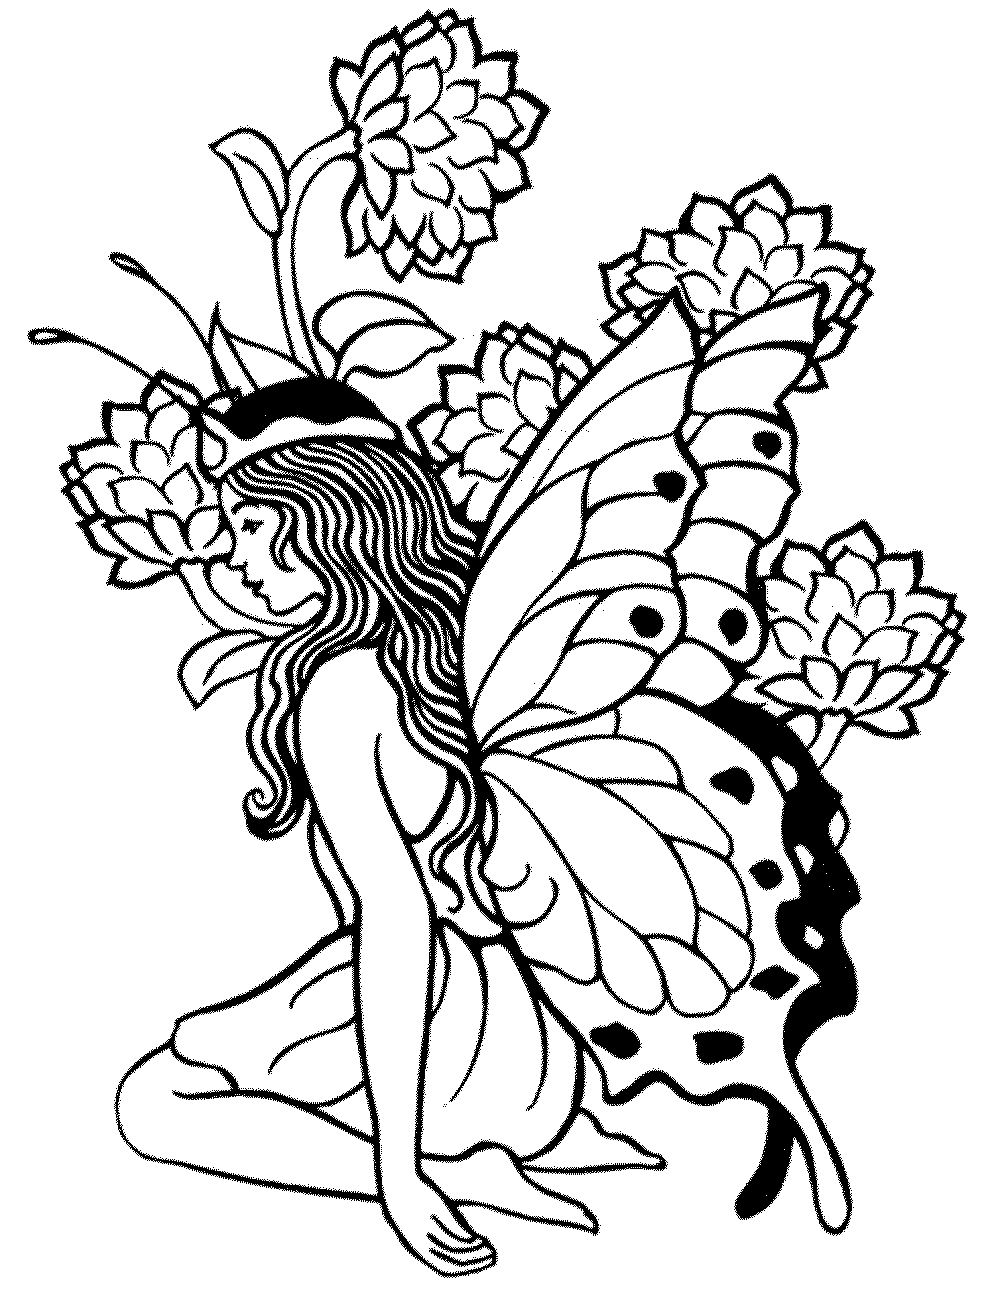 colouring pages for adults online free free book today and tomorrow 9th 10th for anyone who free colouring pages online for adults